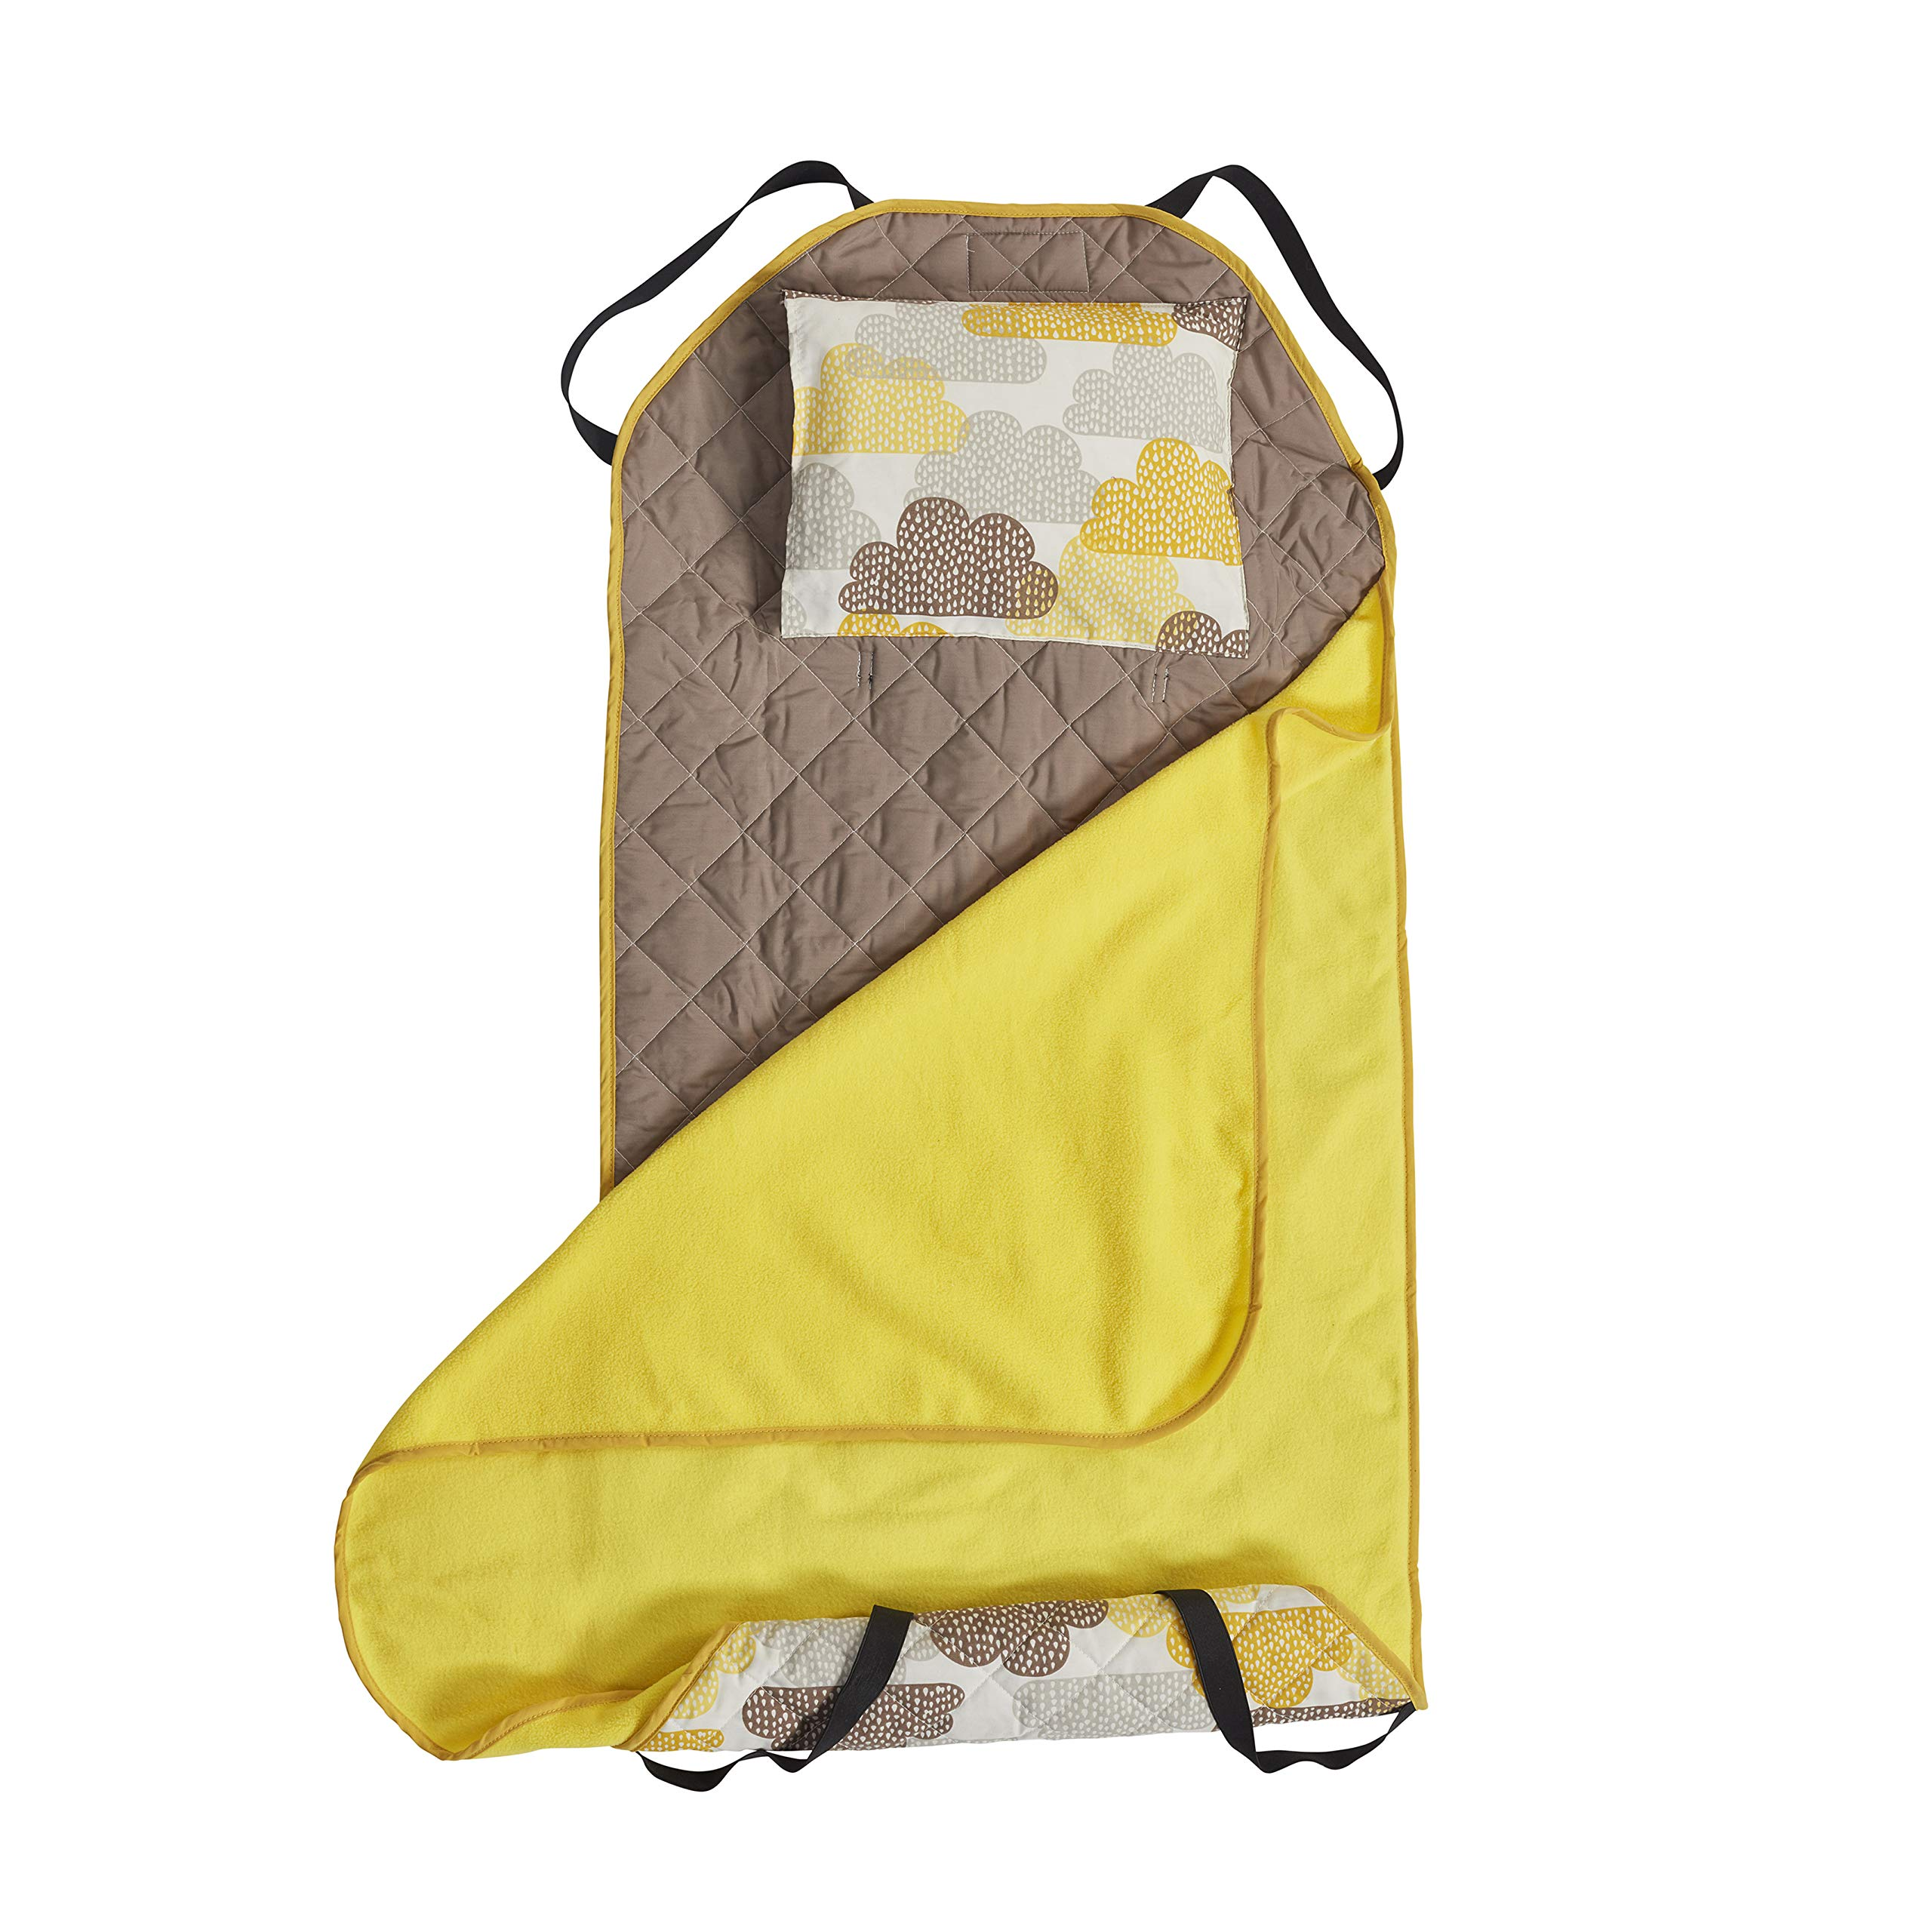 ECR4Kids Toddler Nap Mat Companion - Portable All-in-One Preschool/Daycare Nap Bundle with Built-in Liner, Blanket and Removable Pillow, Honey Clouds Design by ECR4Kids